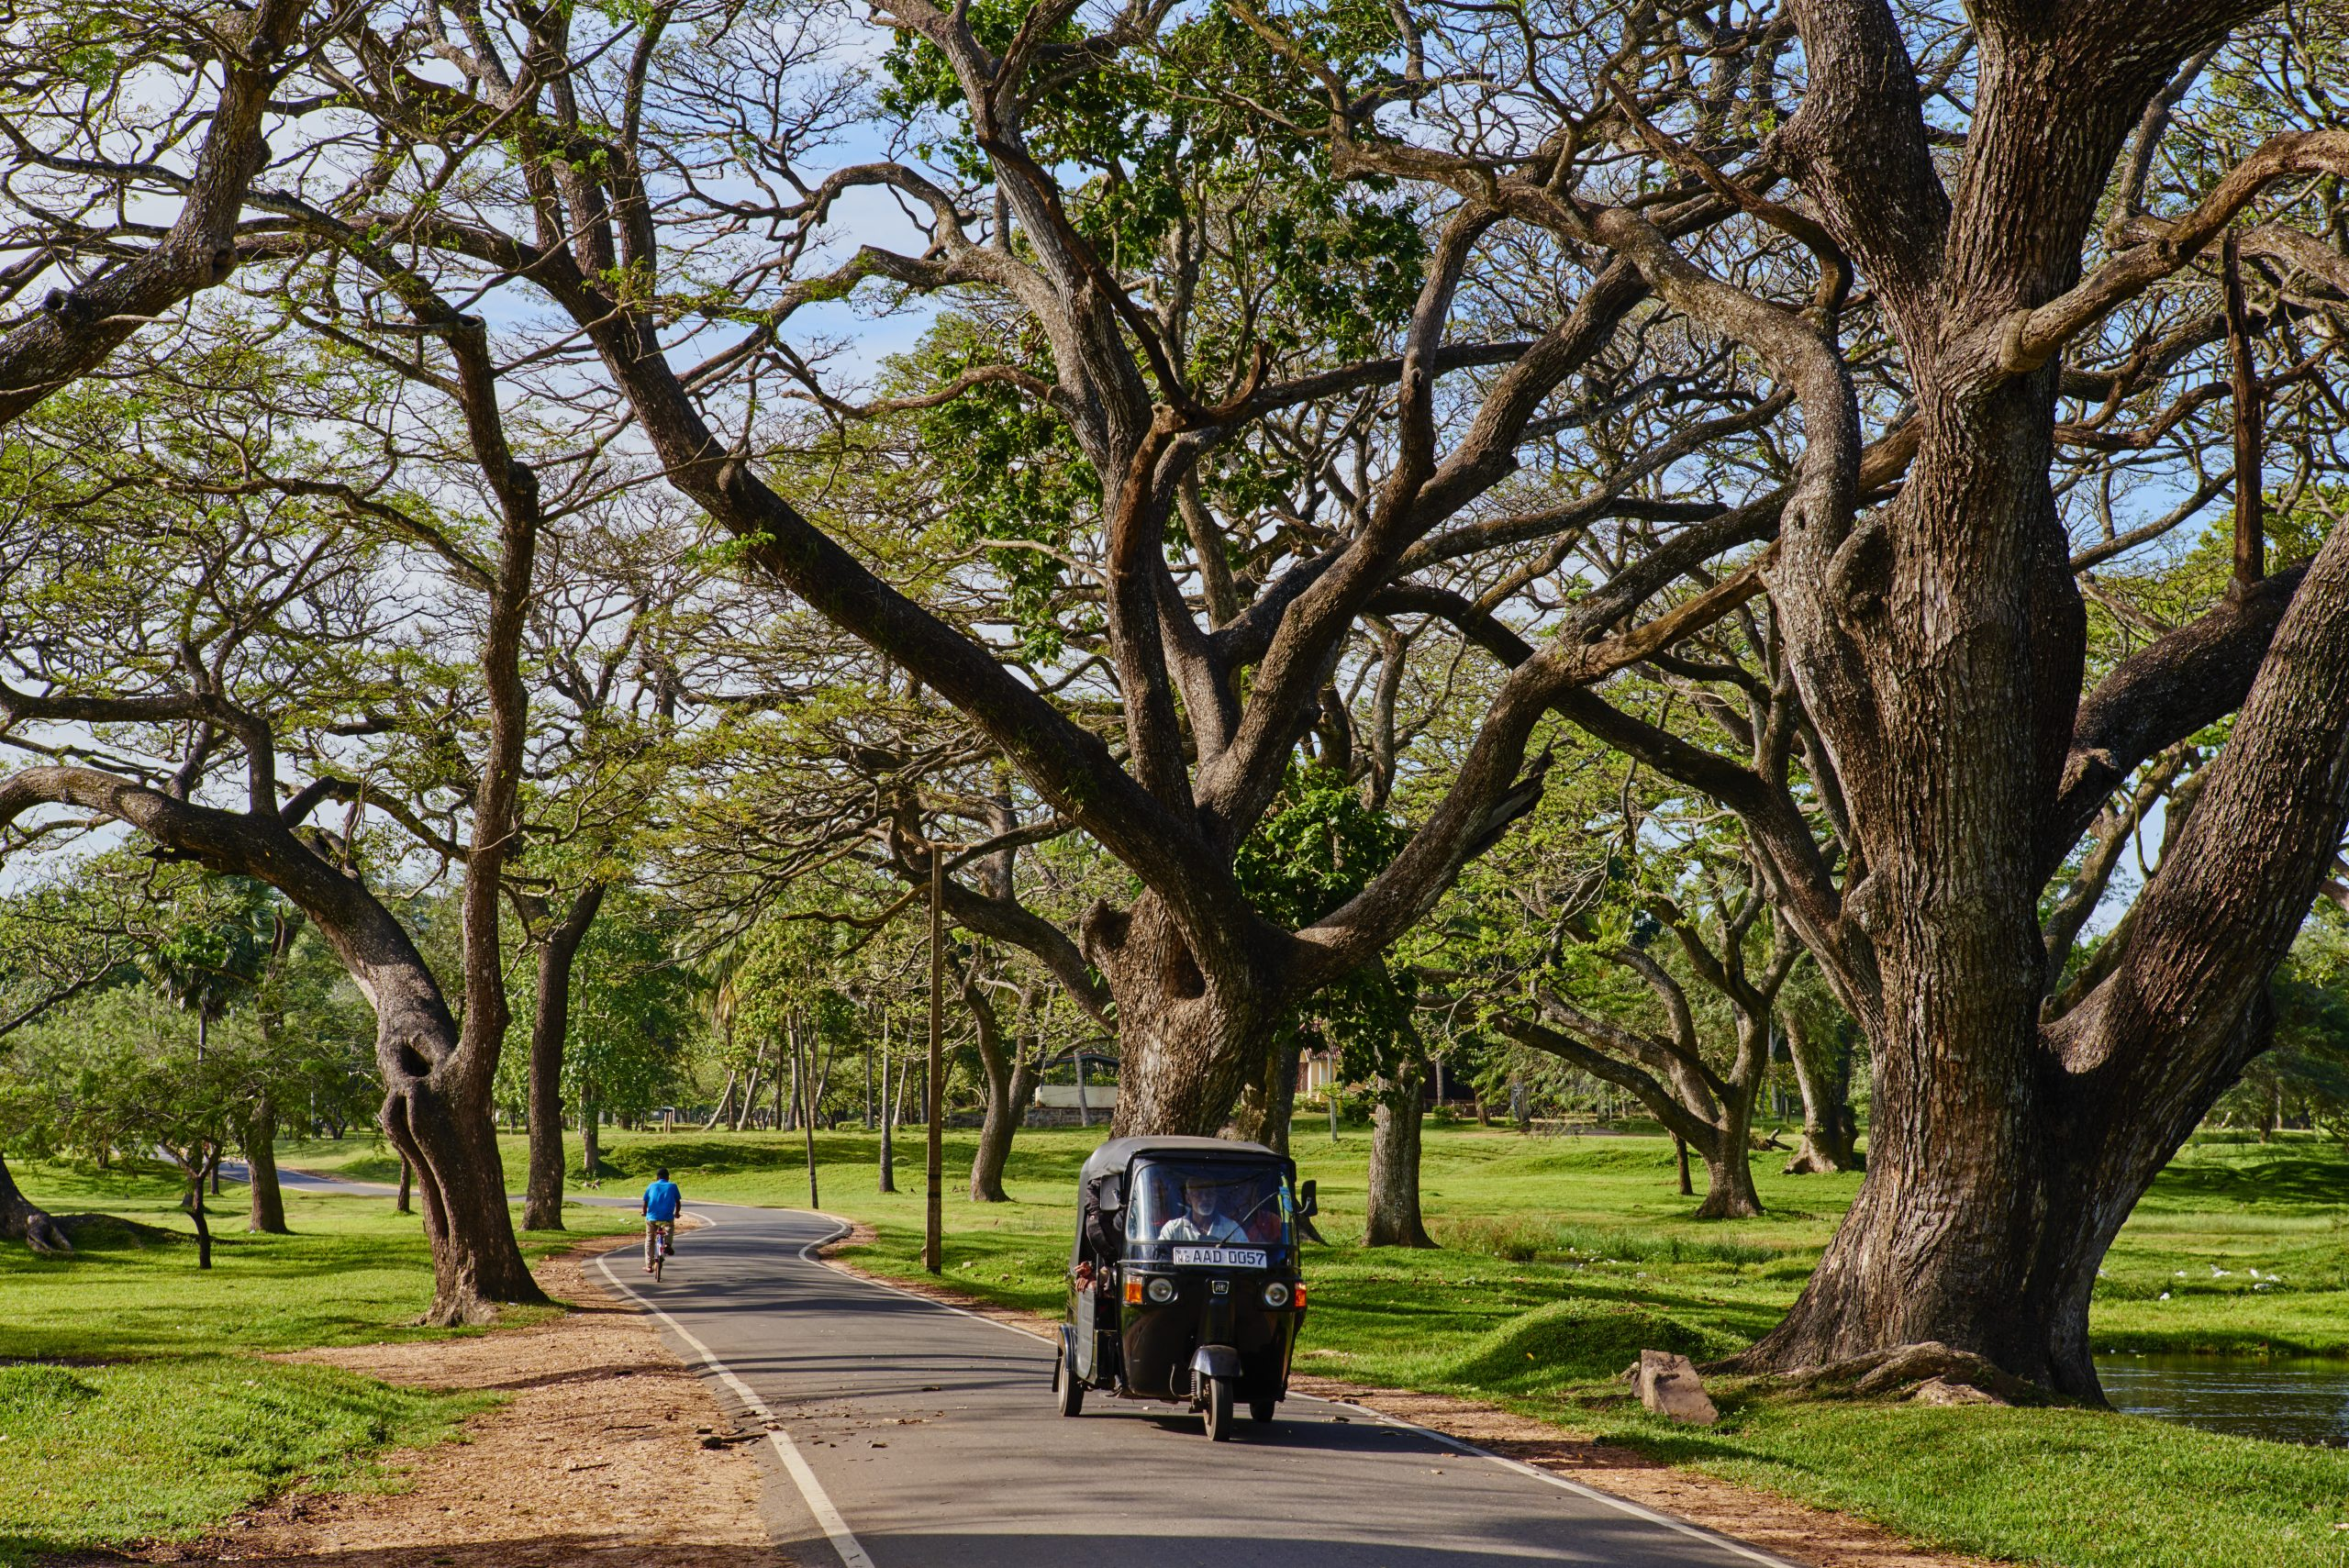 Sri Lanka, Anuradhapura, rickshaw under tree